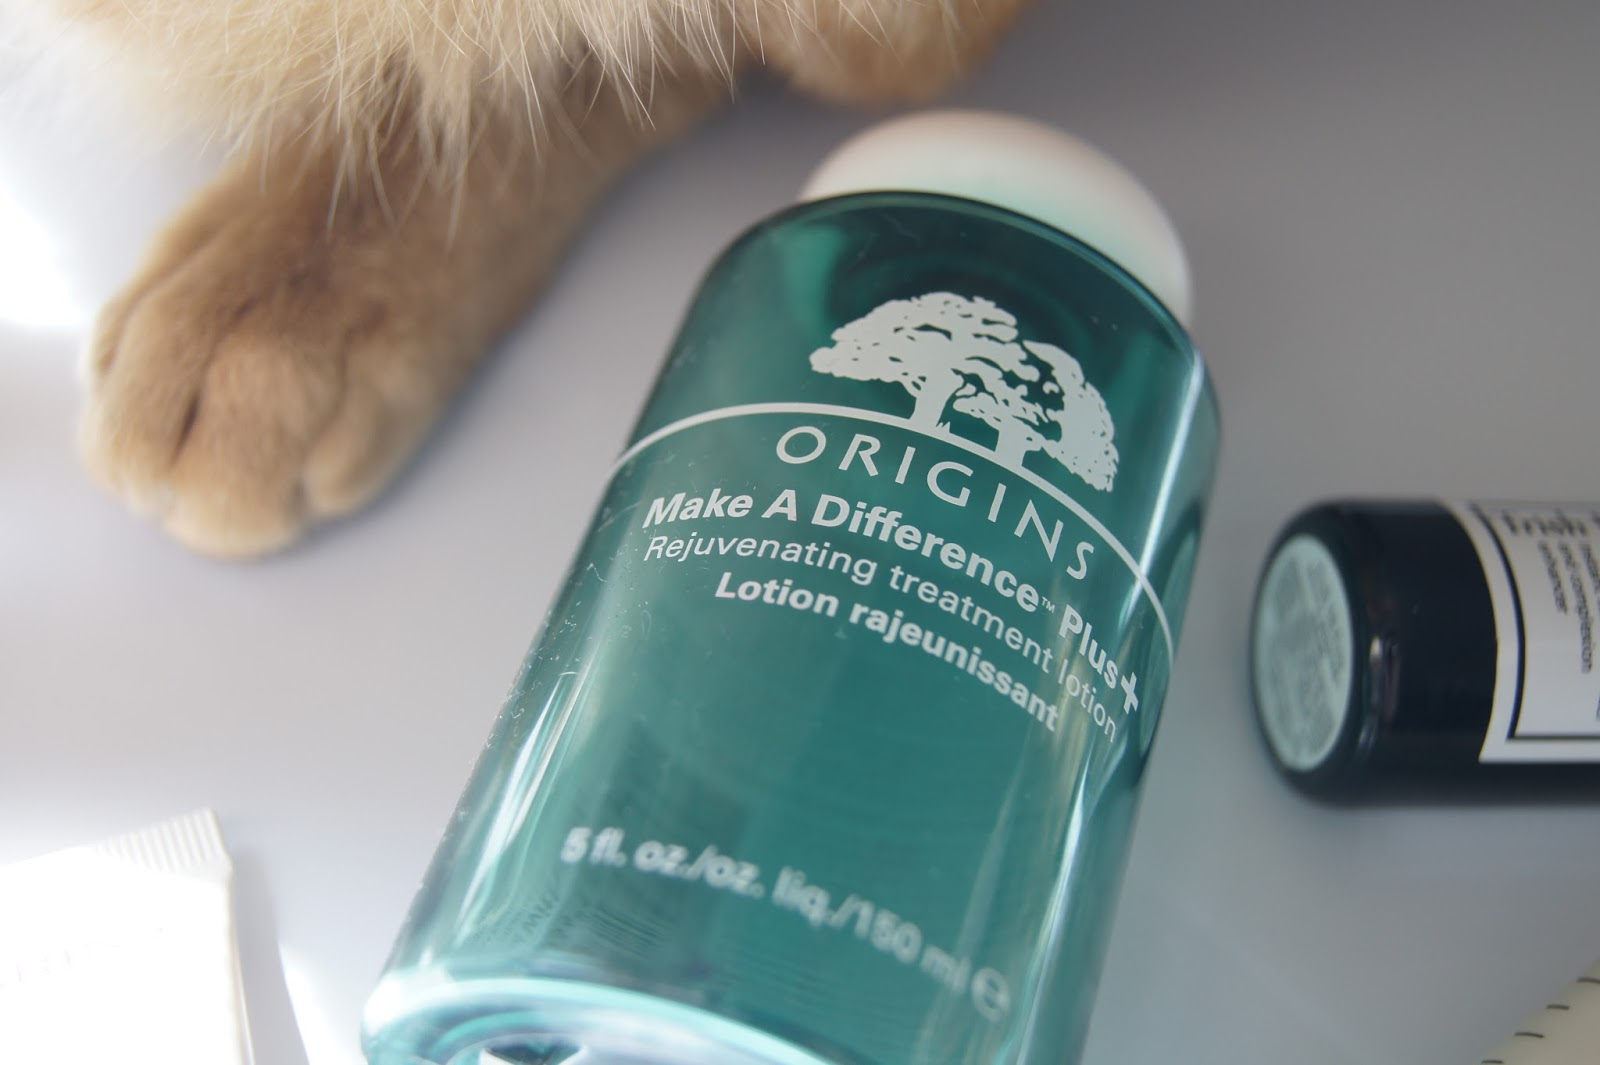 Origins Make a Difference Plus rejuvenating lotion review